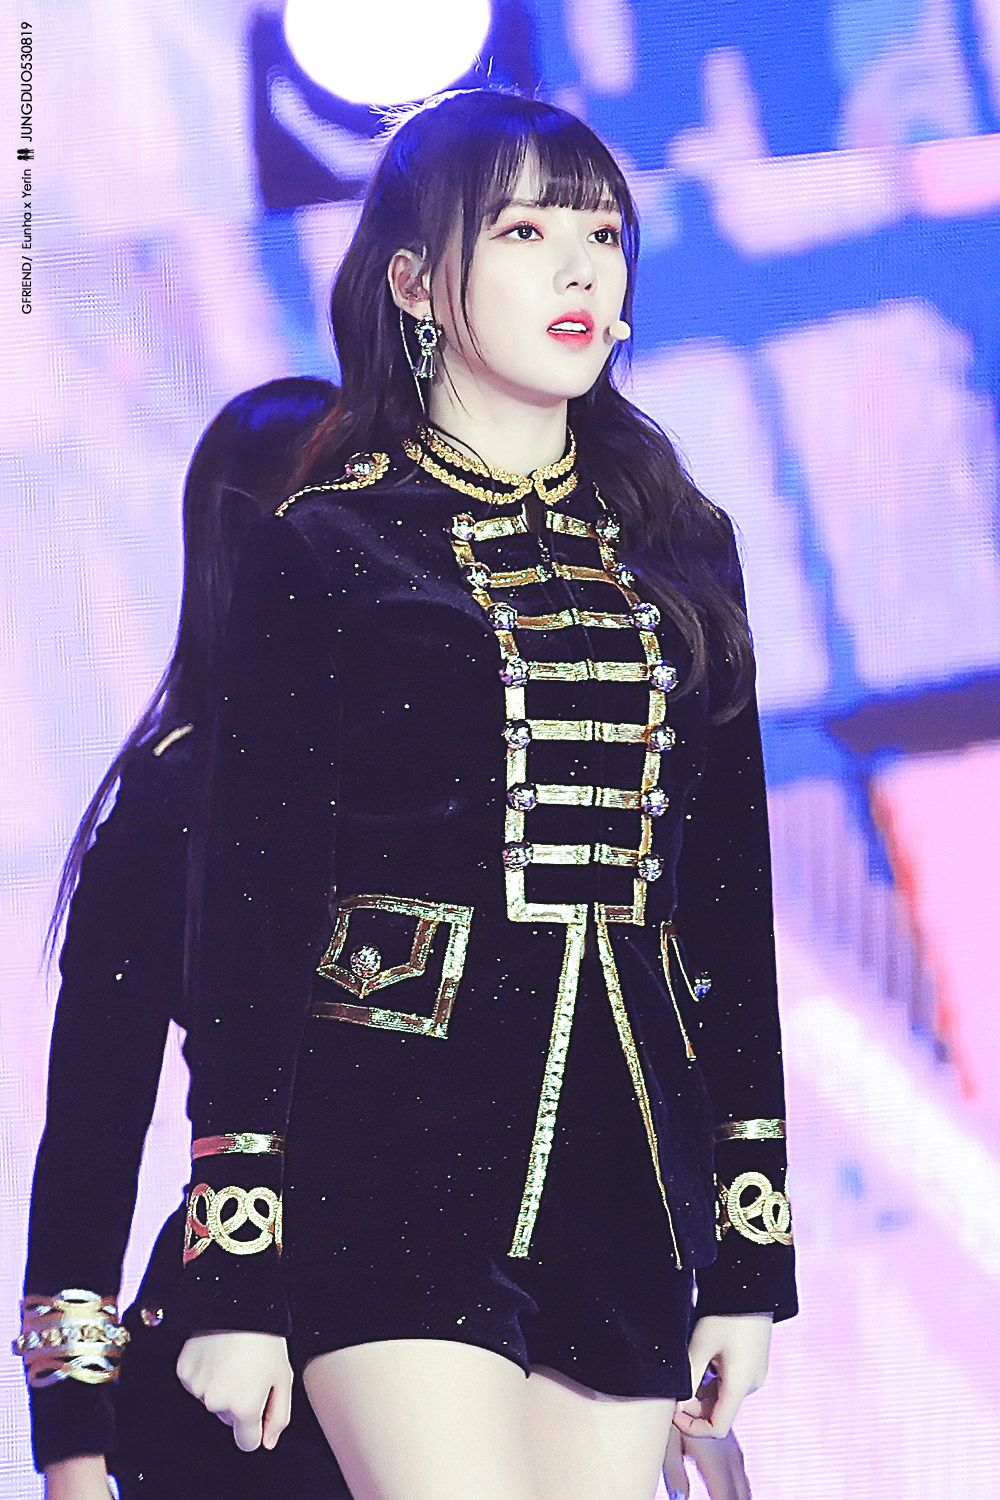 Pin By Gamer Lucy On K Pop Military Outfit Stage Outfits Friend Outfits